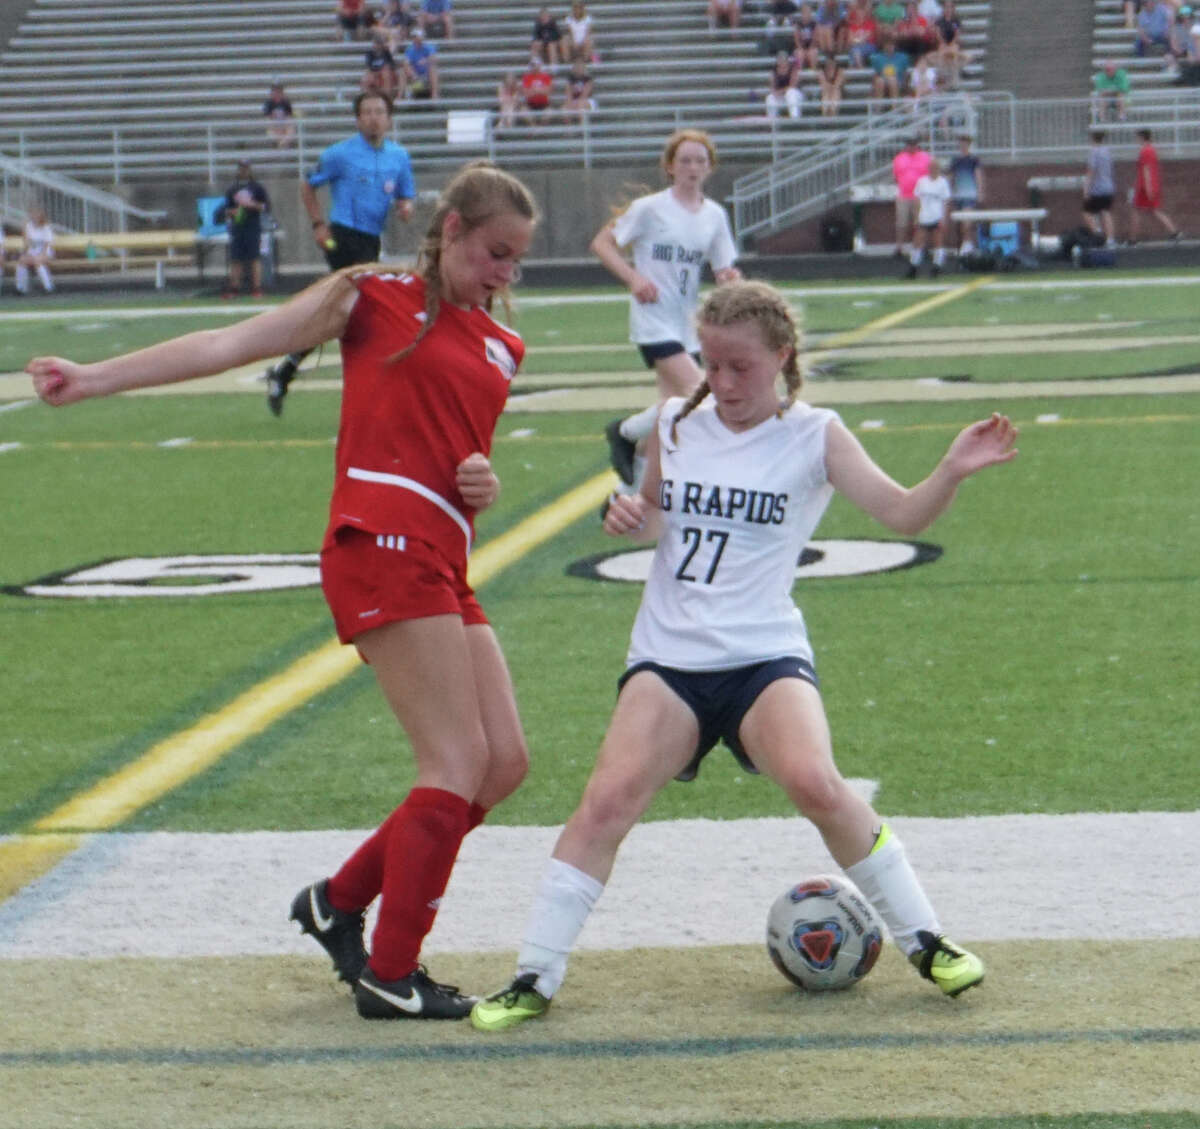 On Tuesday night in Comstock Park, the Big Rapids girls soccer team defeated Tawas 3-0 to advance to the Regional final.